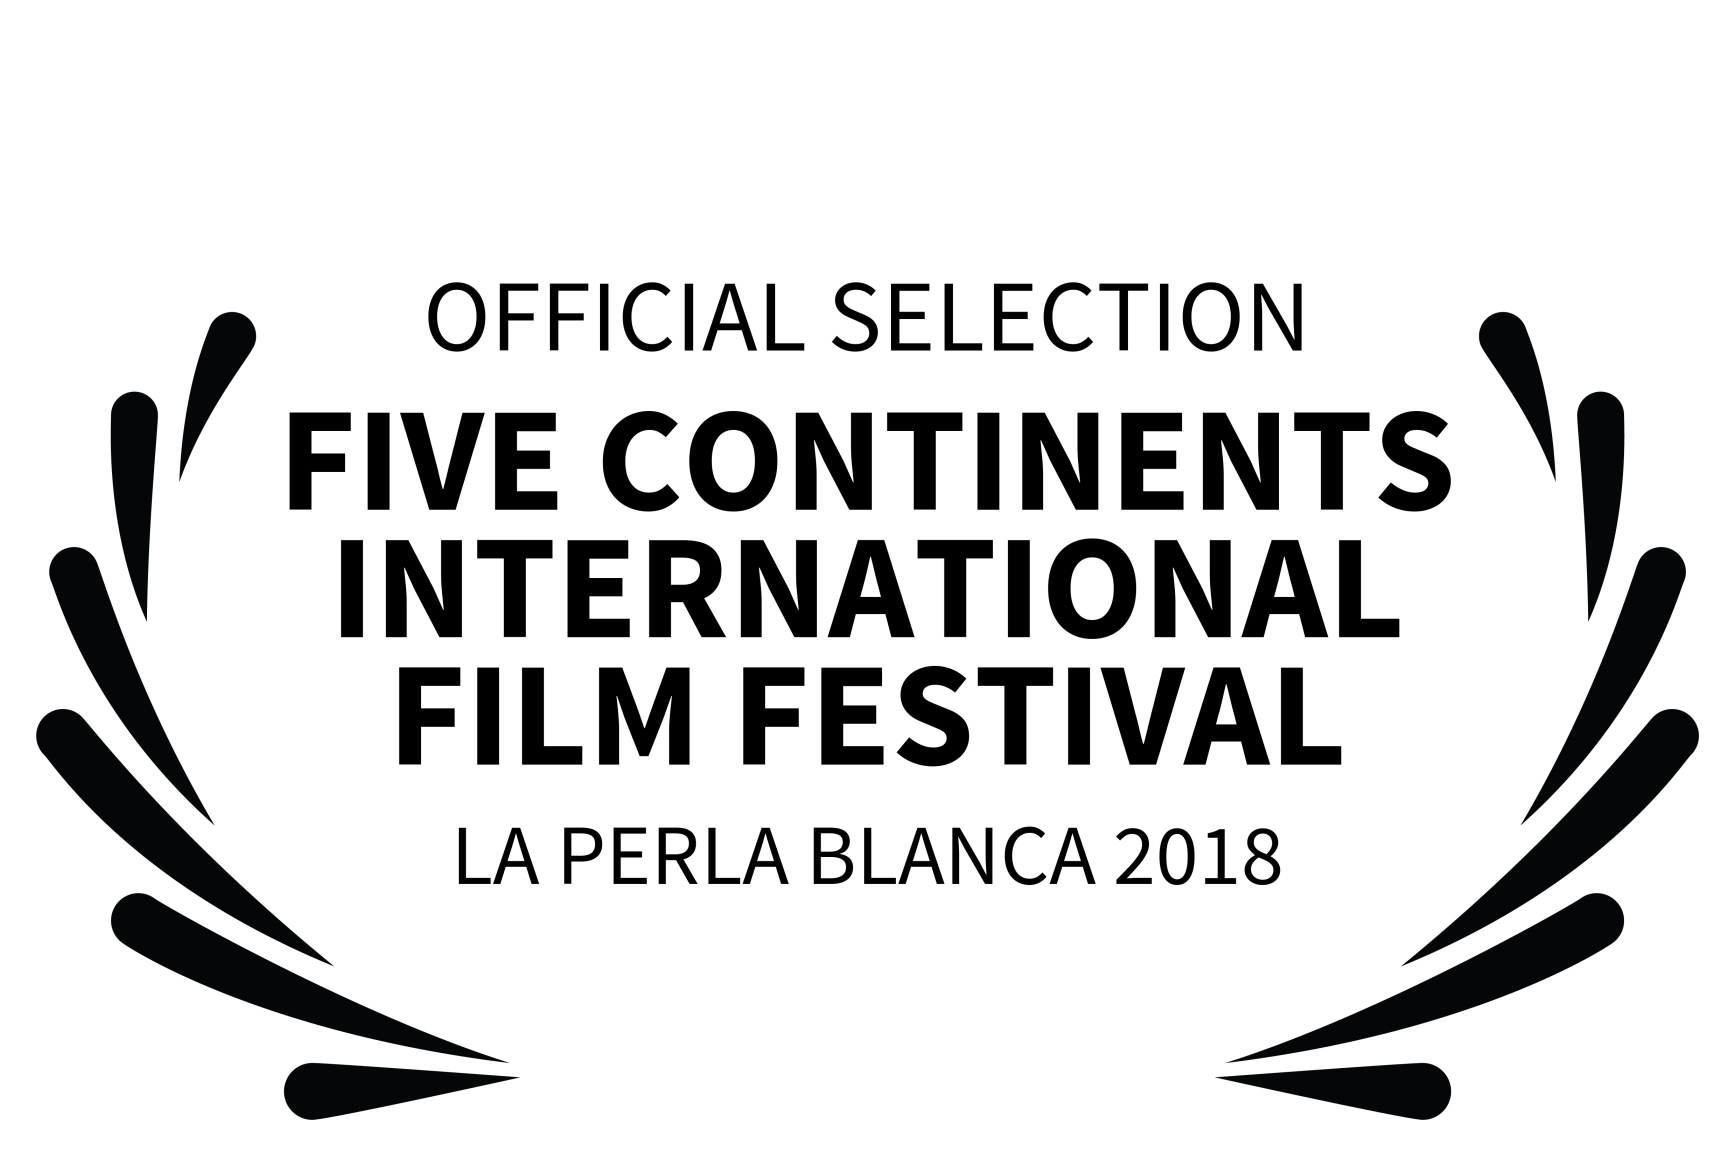 OFFICIAL SELECTION - FIVE CONTINENTS INT